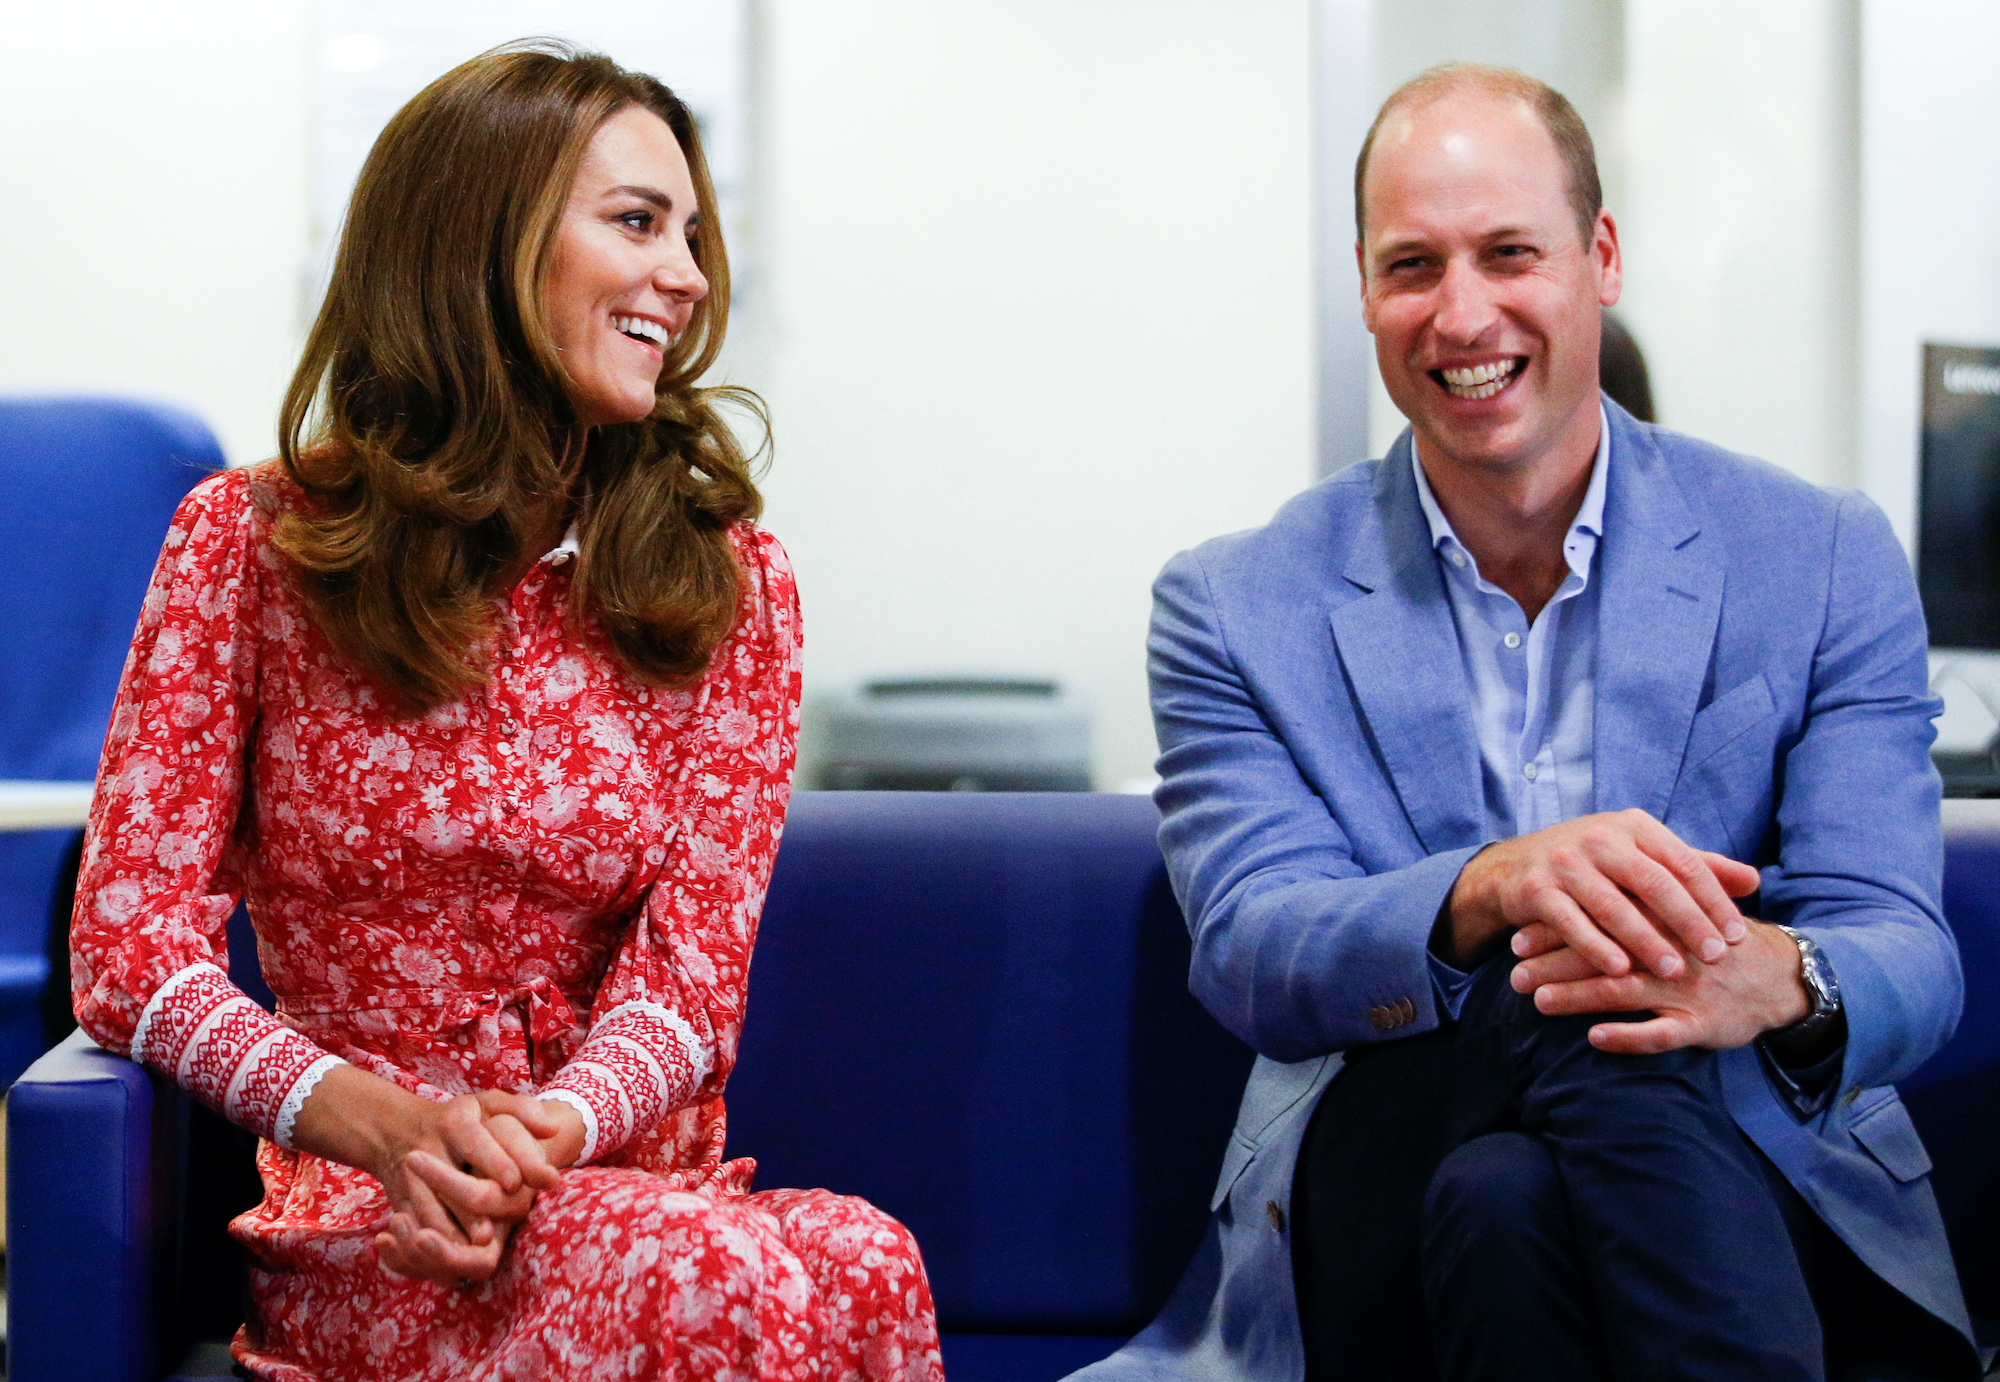 Prince William and Kate Middleton's Secret for Marital Success Lies in Their Different Backgrounds